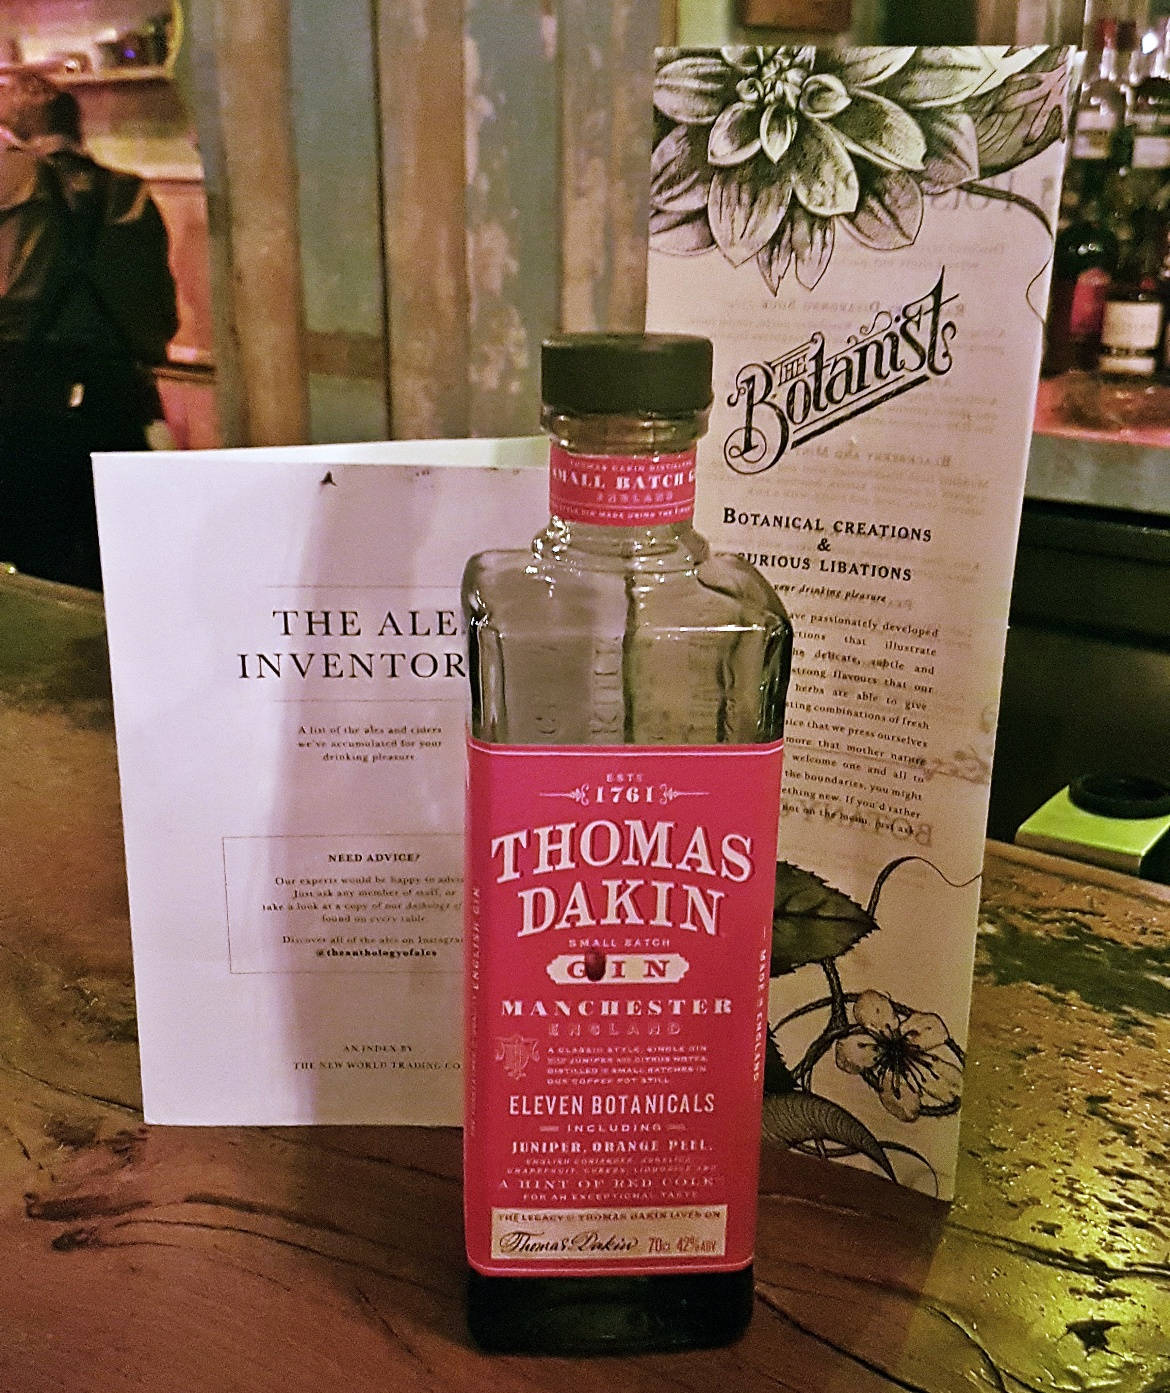 Thomas Dakin gin - Gin Masterclass at the Botanist Leeds, review by BeckyBecky Blogs